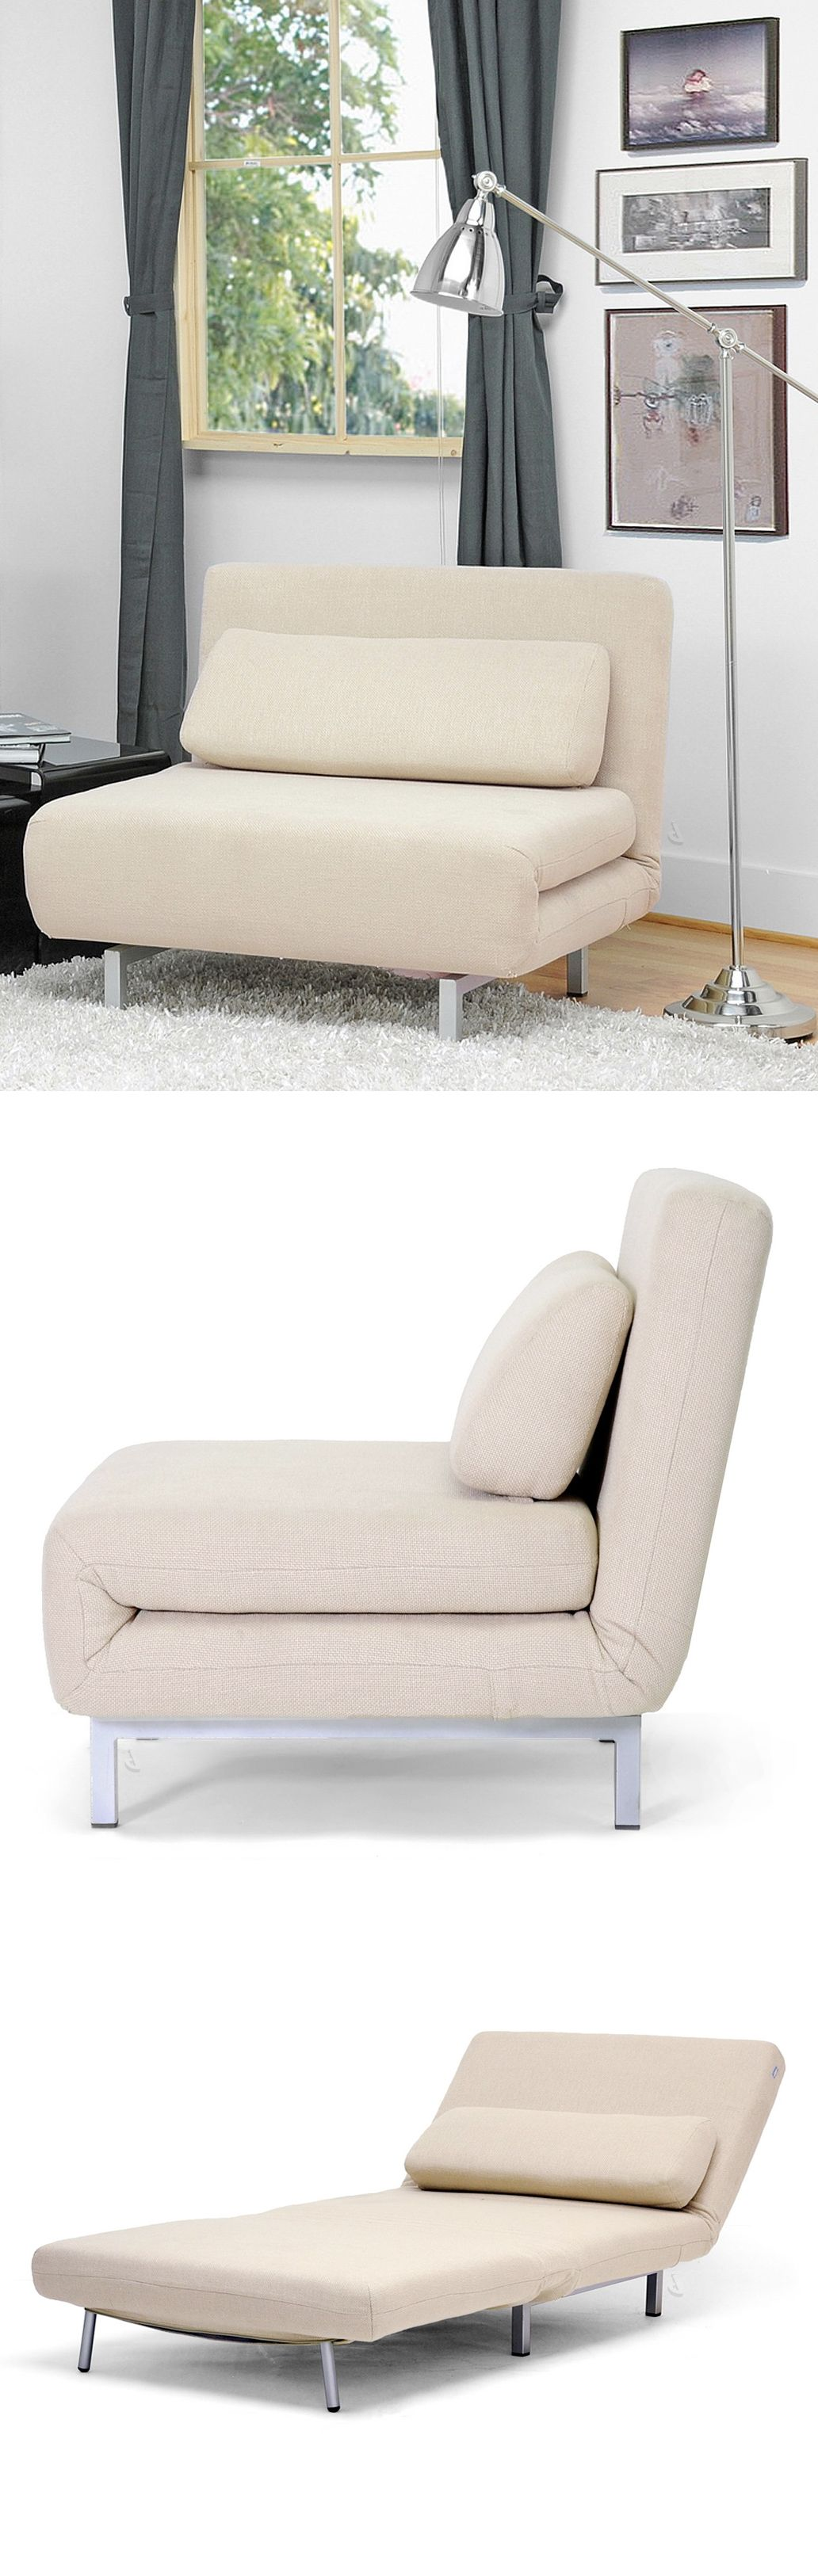 comfy chair becomes a twin mattress sleeper in seconds